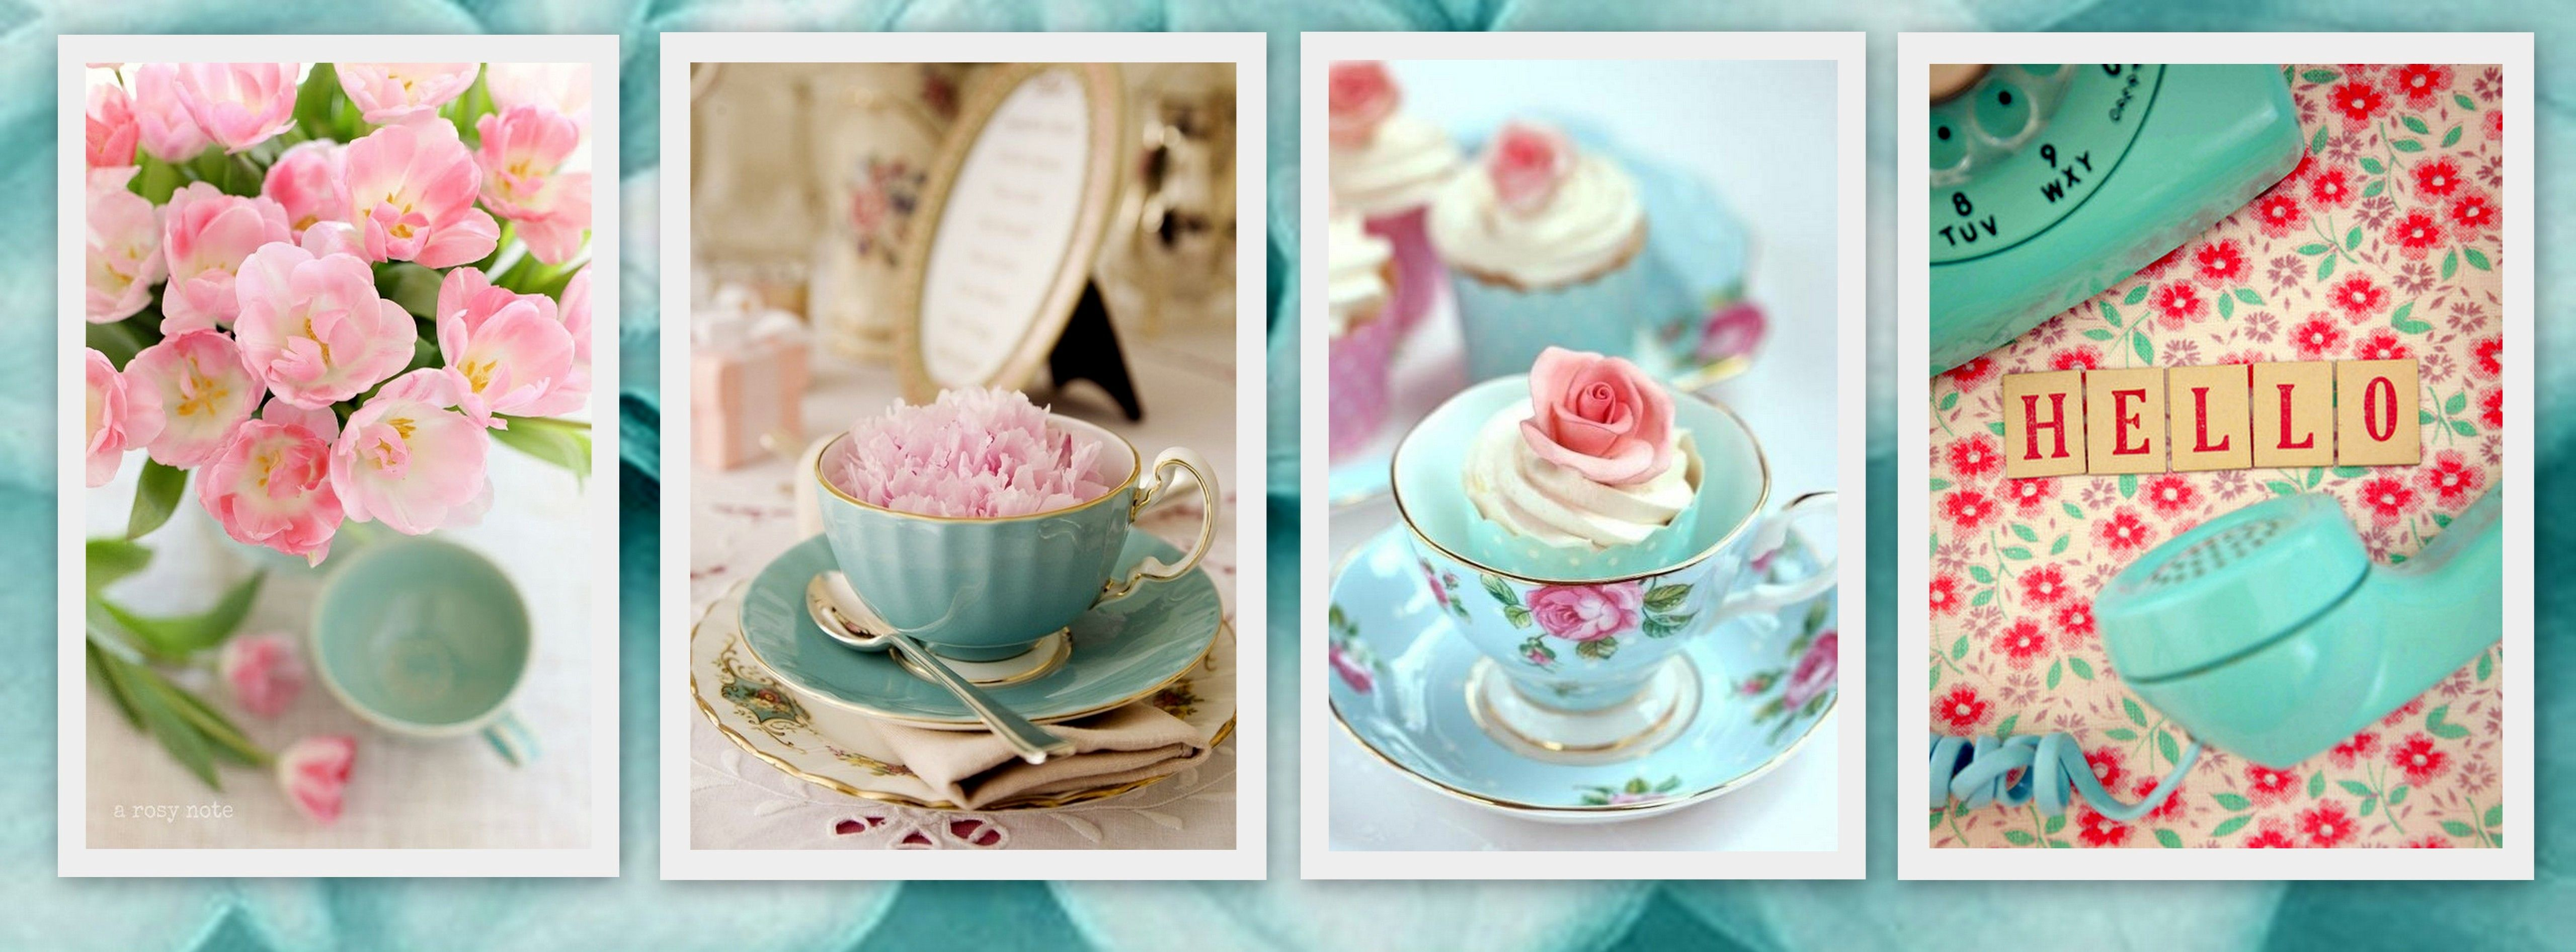 How to make scrapbook on facebook - Shabby Chic Timeline Facebook Cover